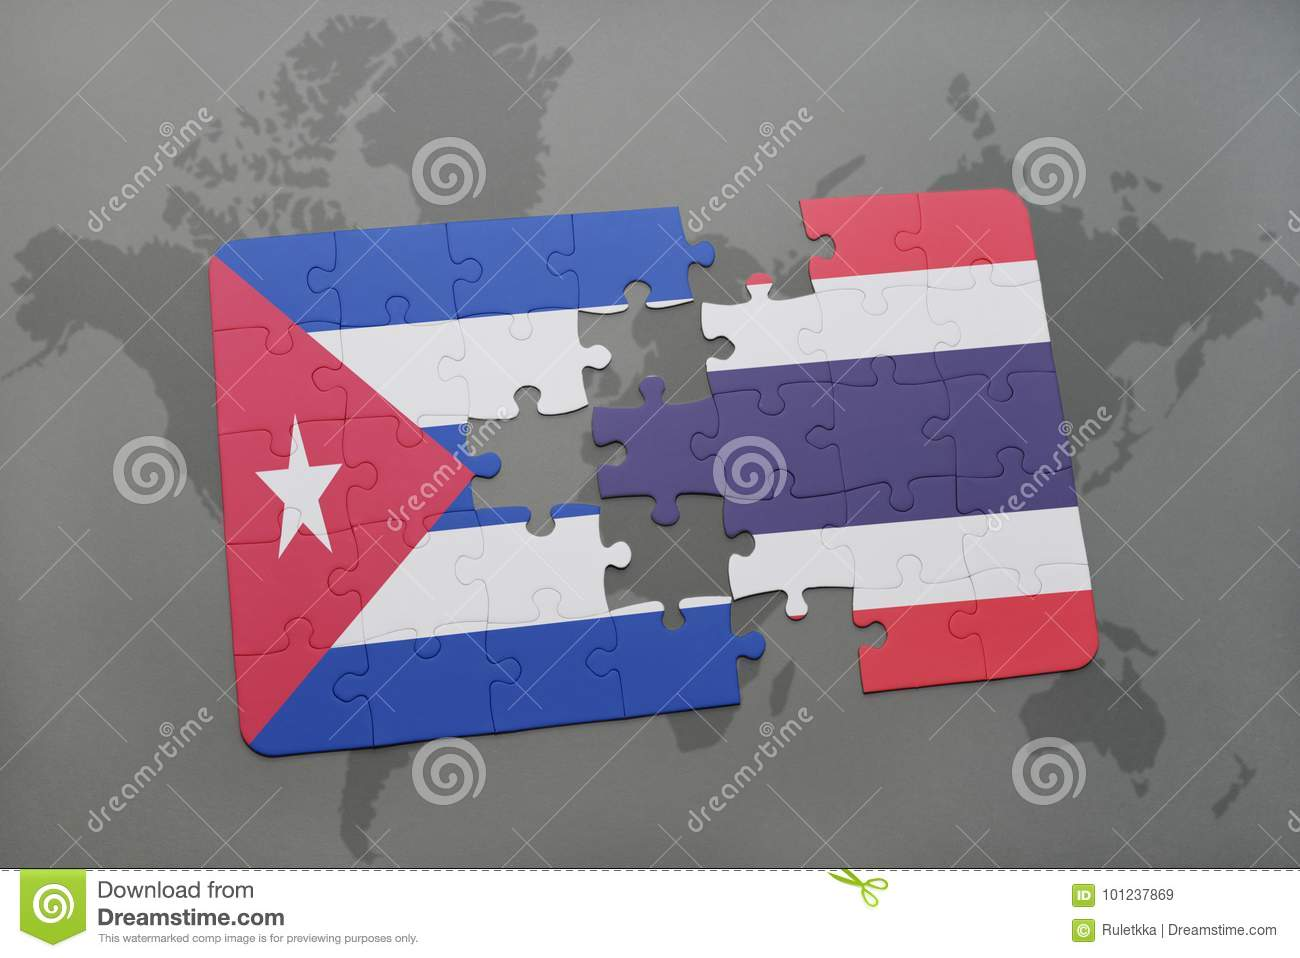 puzzle with the national flag of cuba and thailand on a world map background.